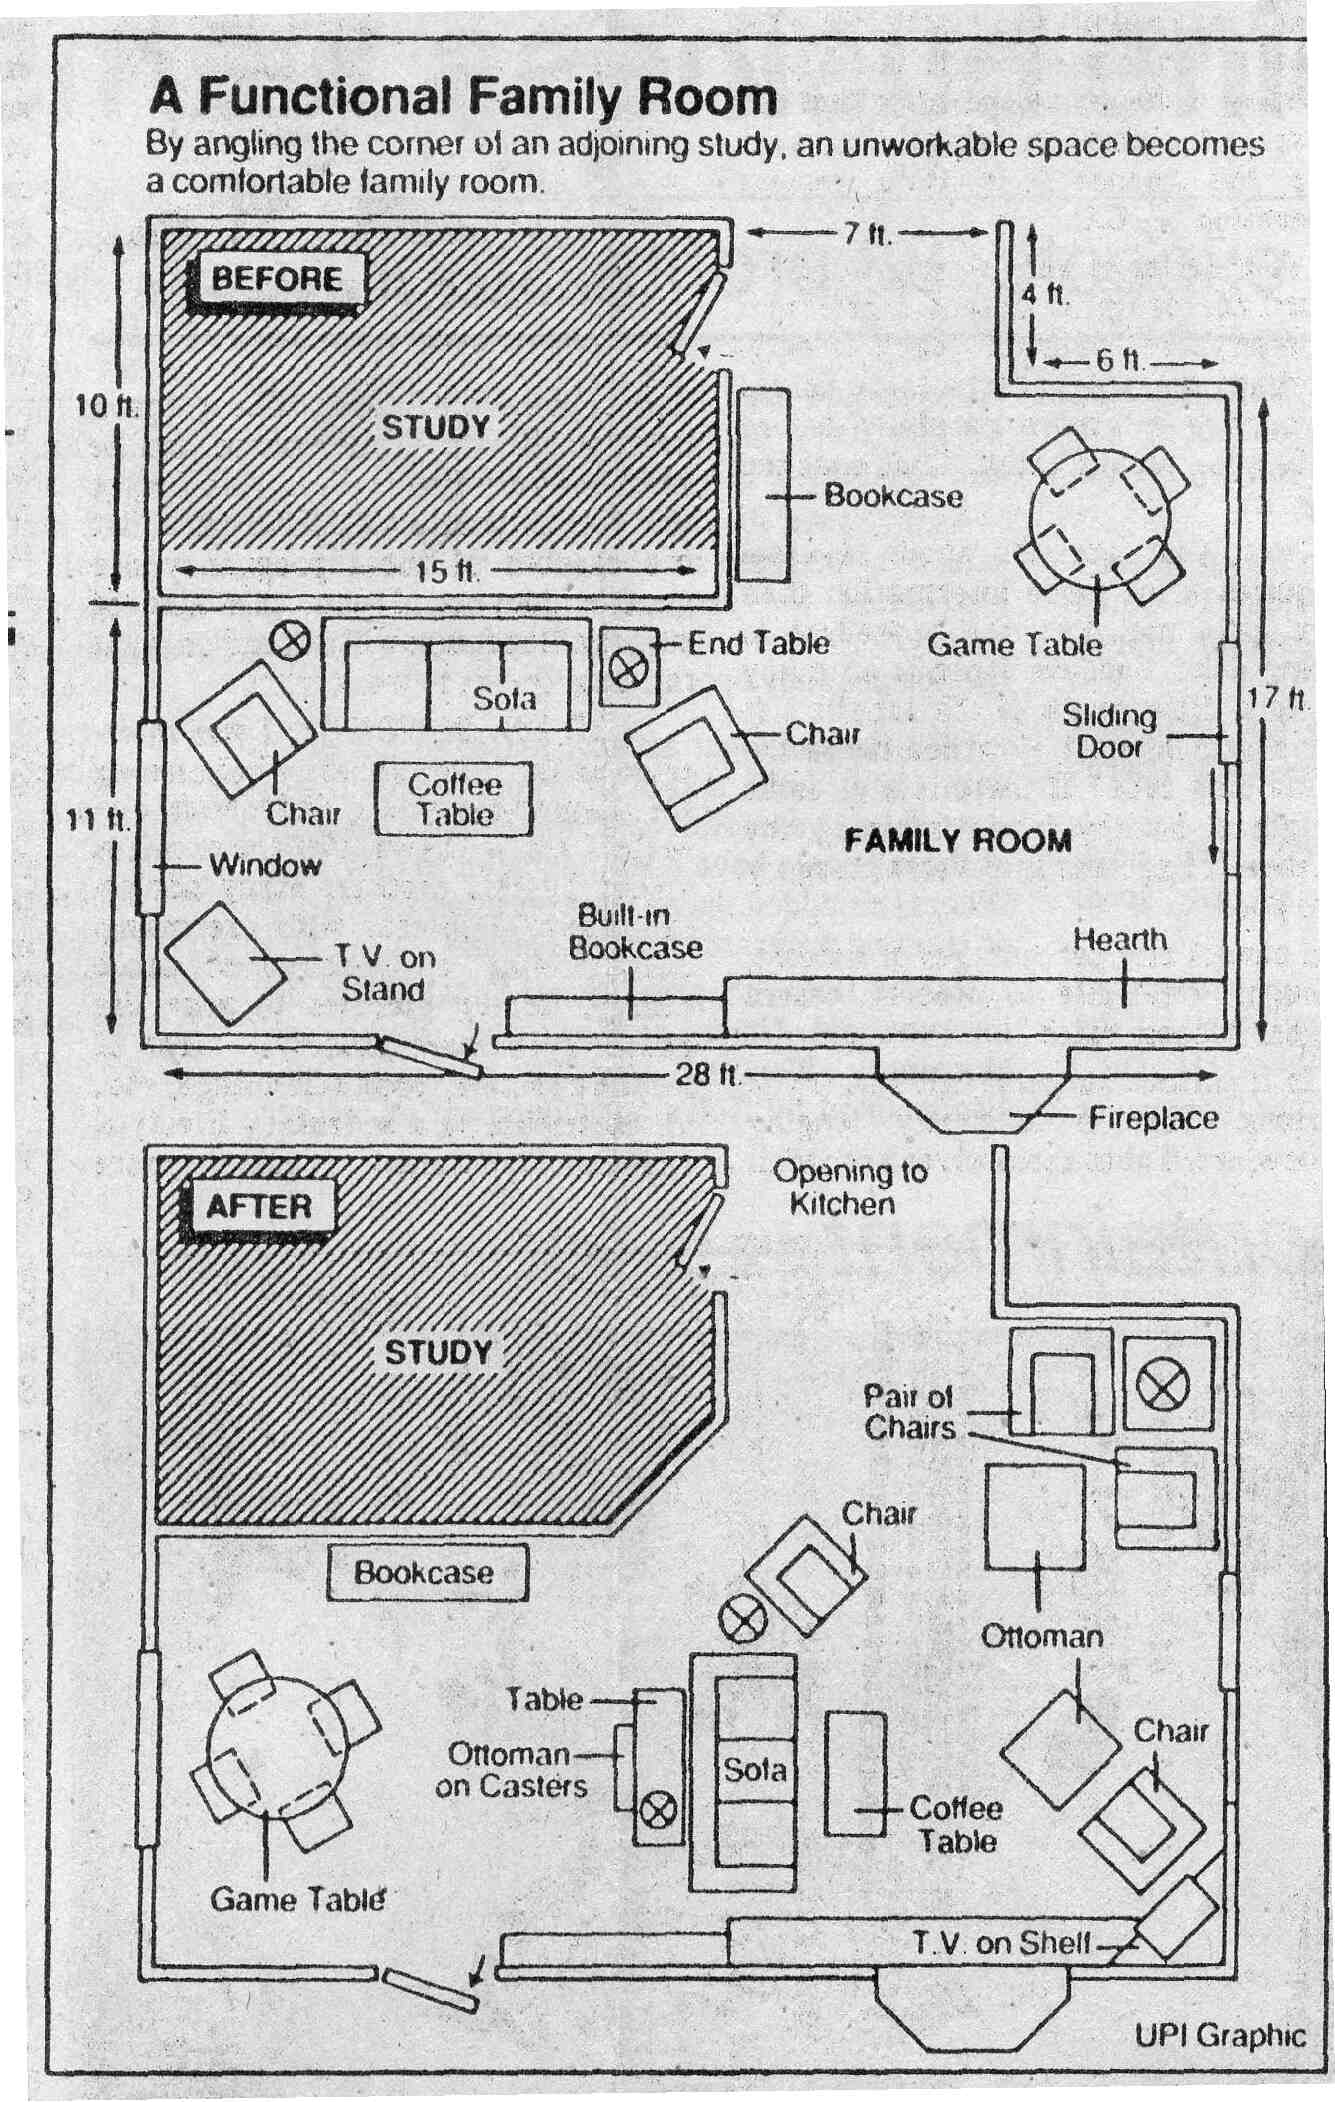 L Shape Living Room Layouts Arrangement Interior Design for Living: L-shape layout is challenging